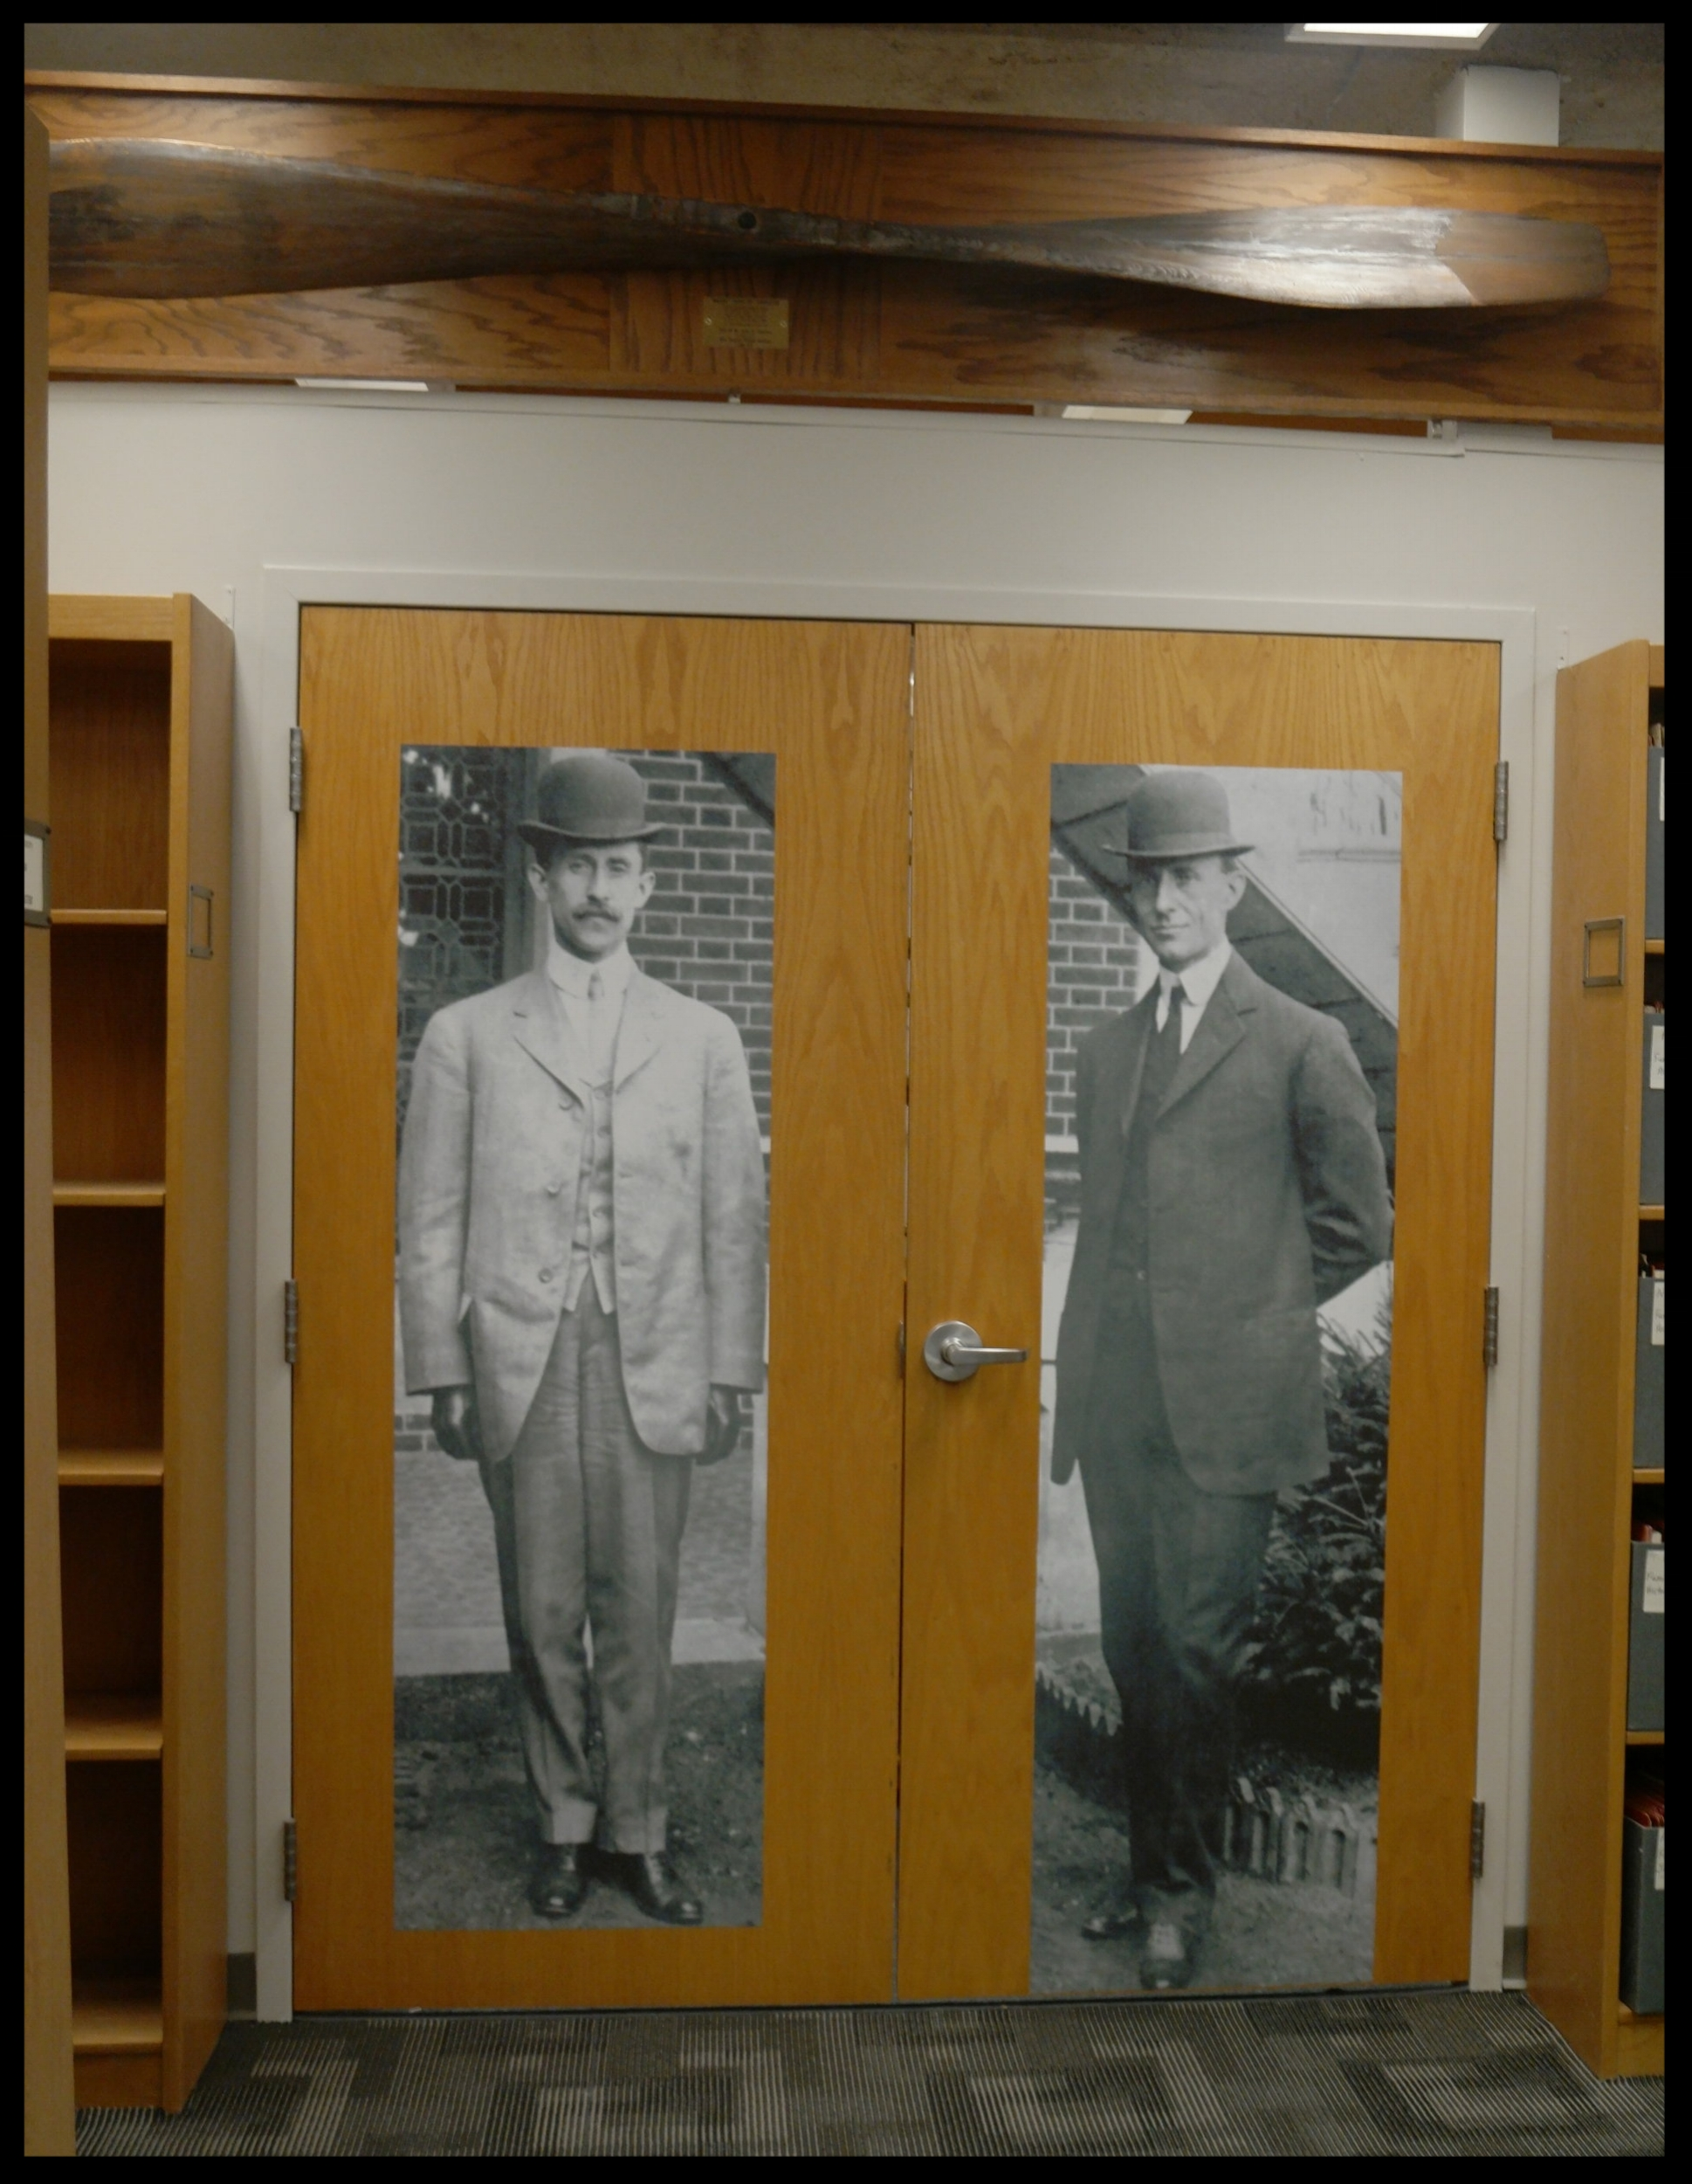 Wright State University archives